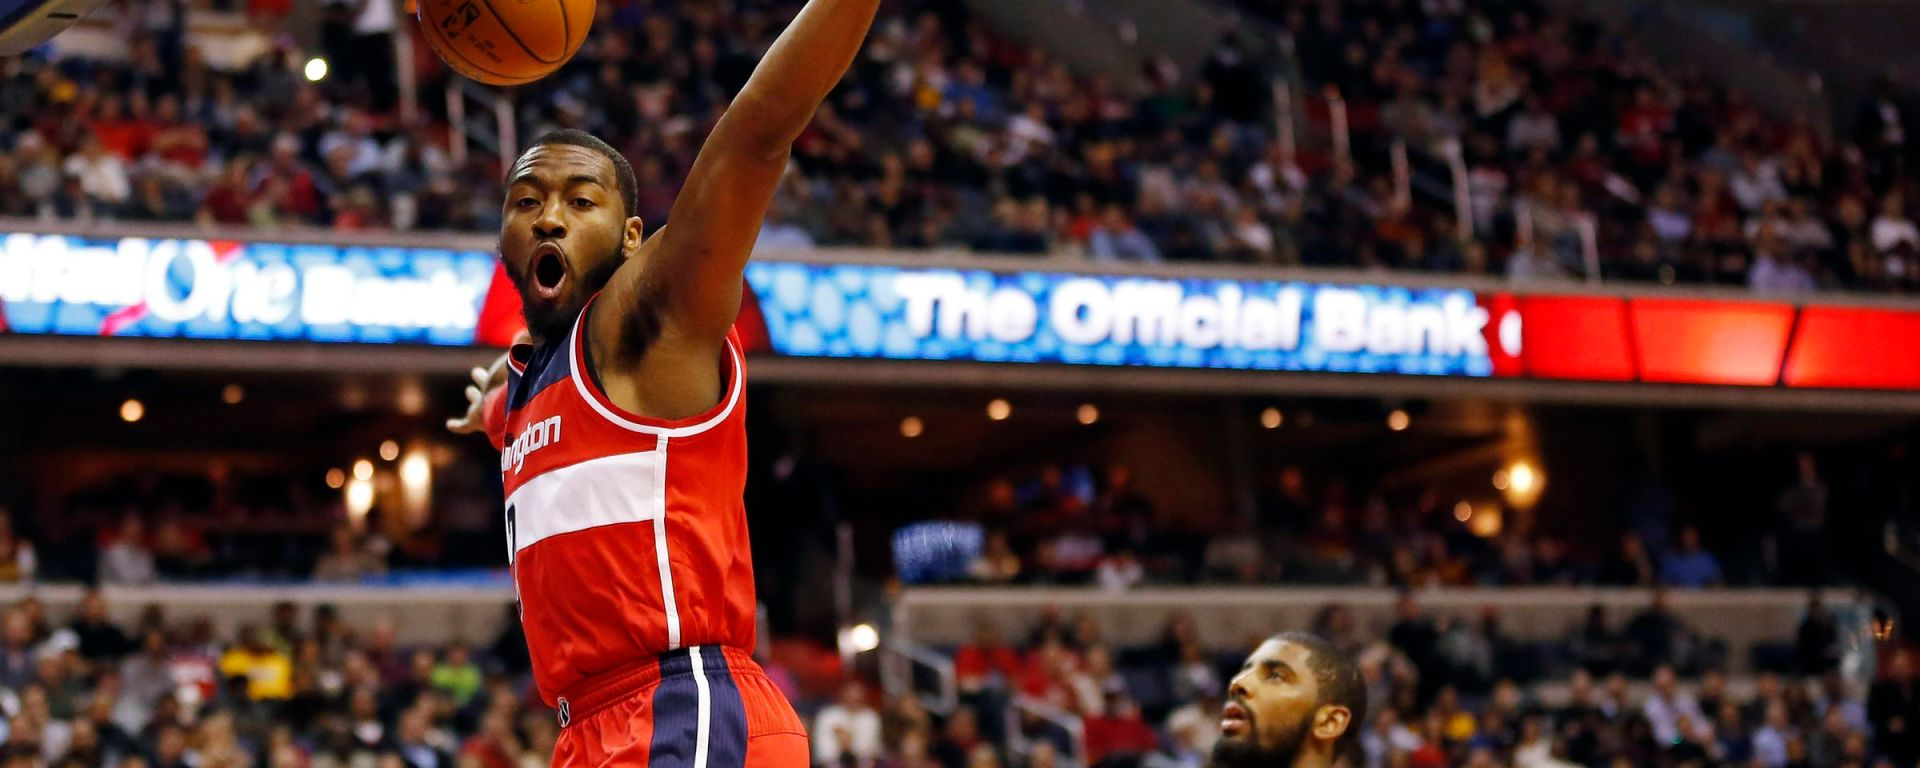 Washington Wizards Blog - John Wall dunks past Kyrie Irving